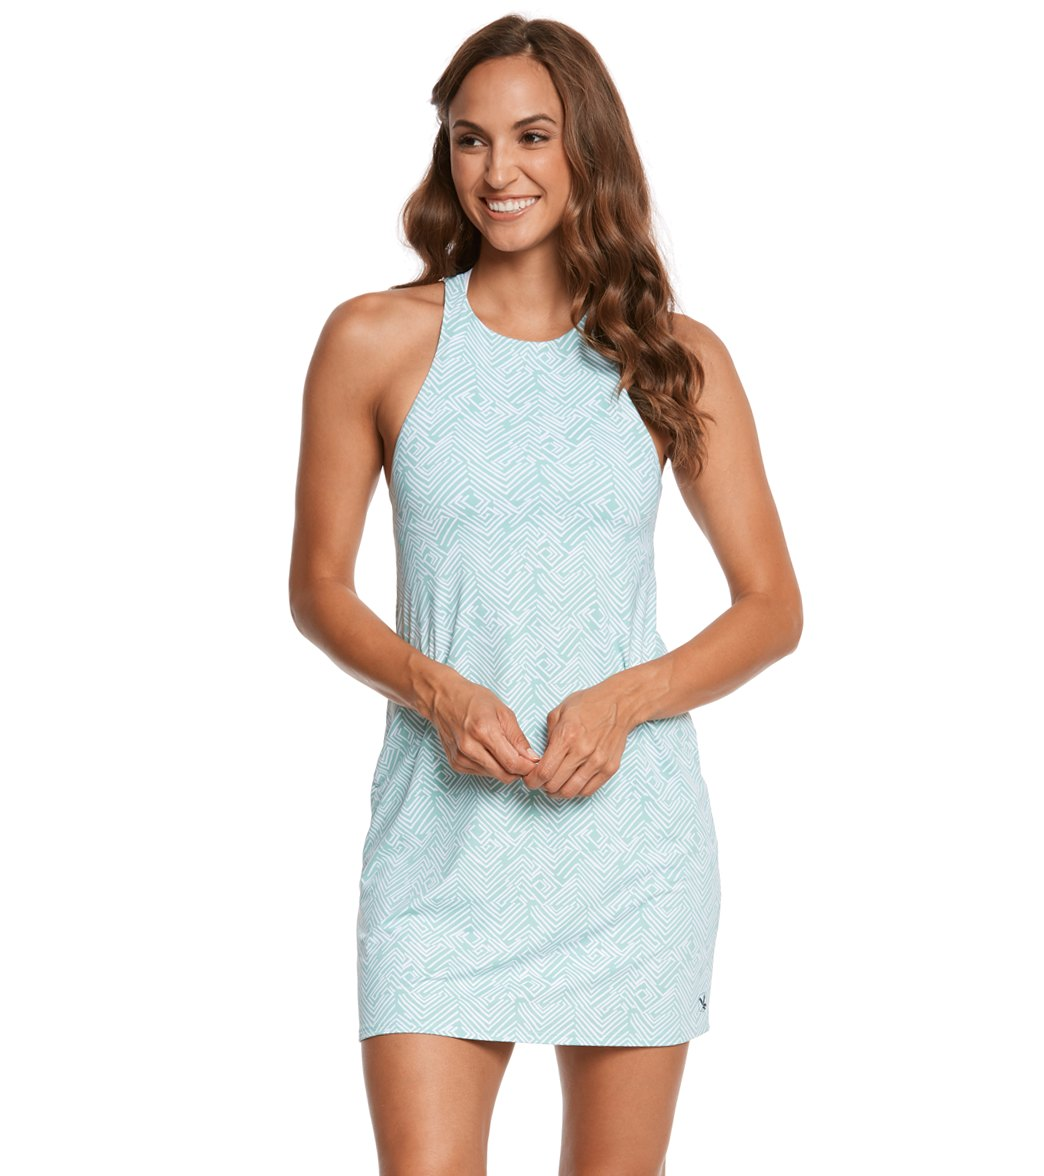 61f3f6e193a20 Carve Designs Women's Sanitas Cover up Dress at SwimOutlet.com - Free  Shipping